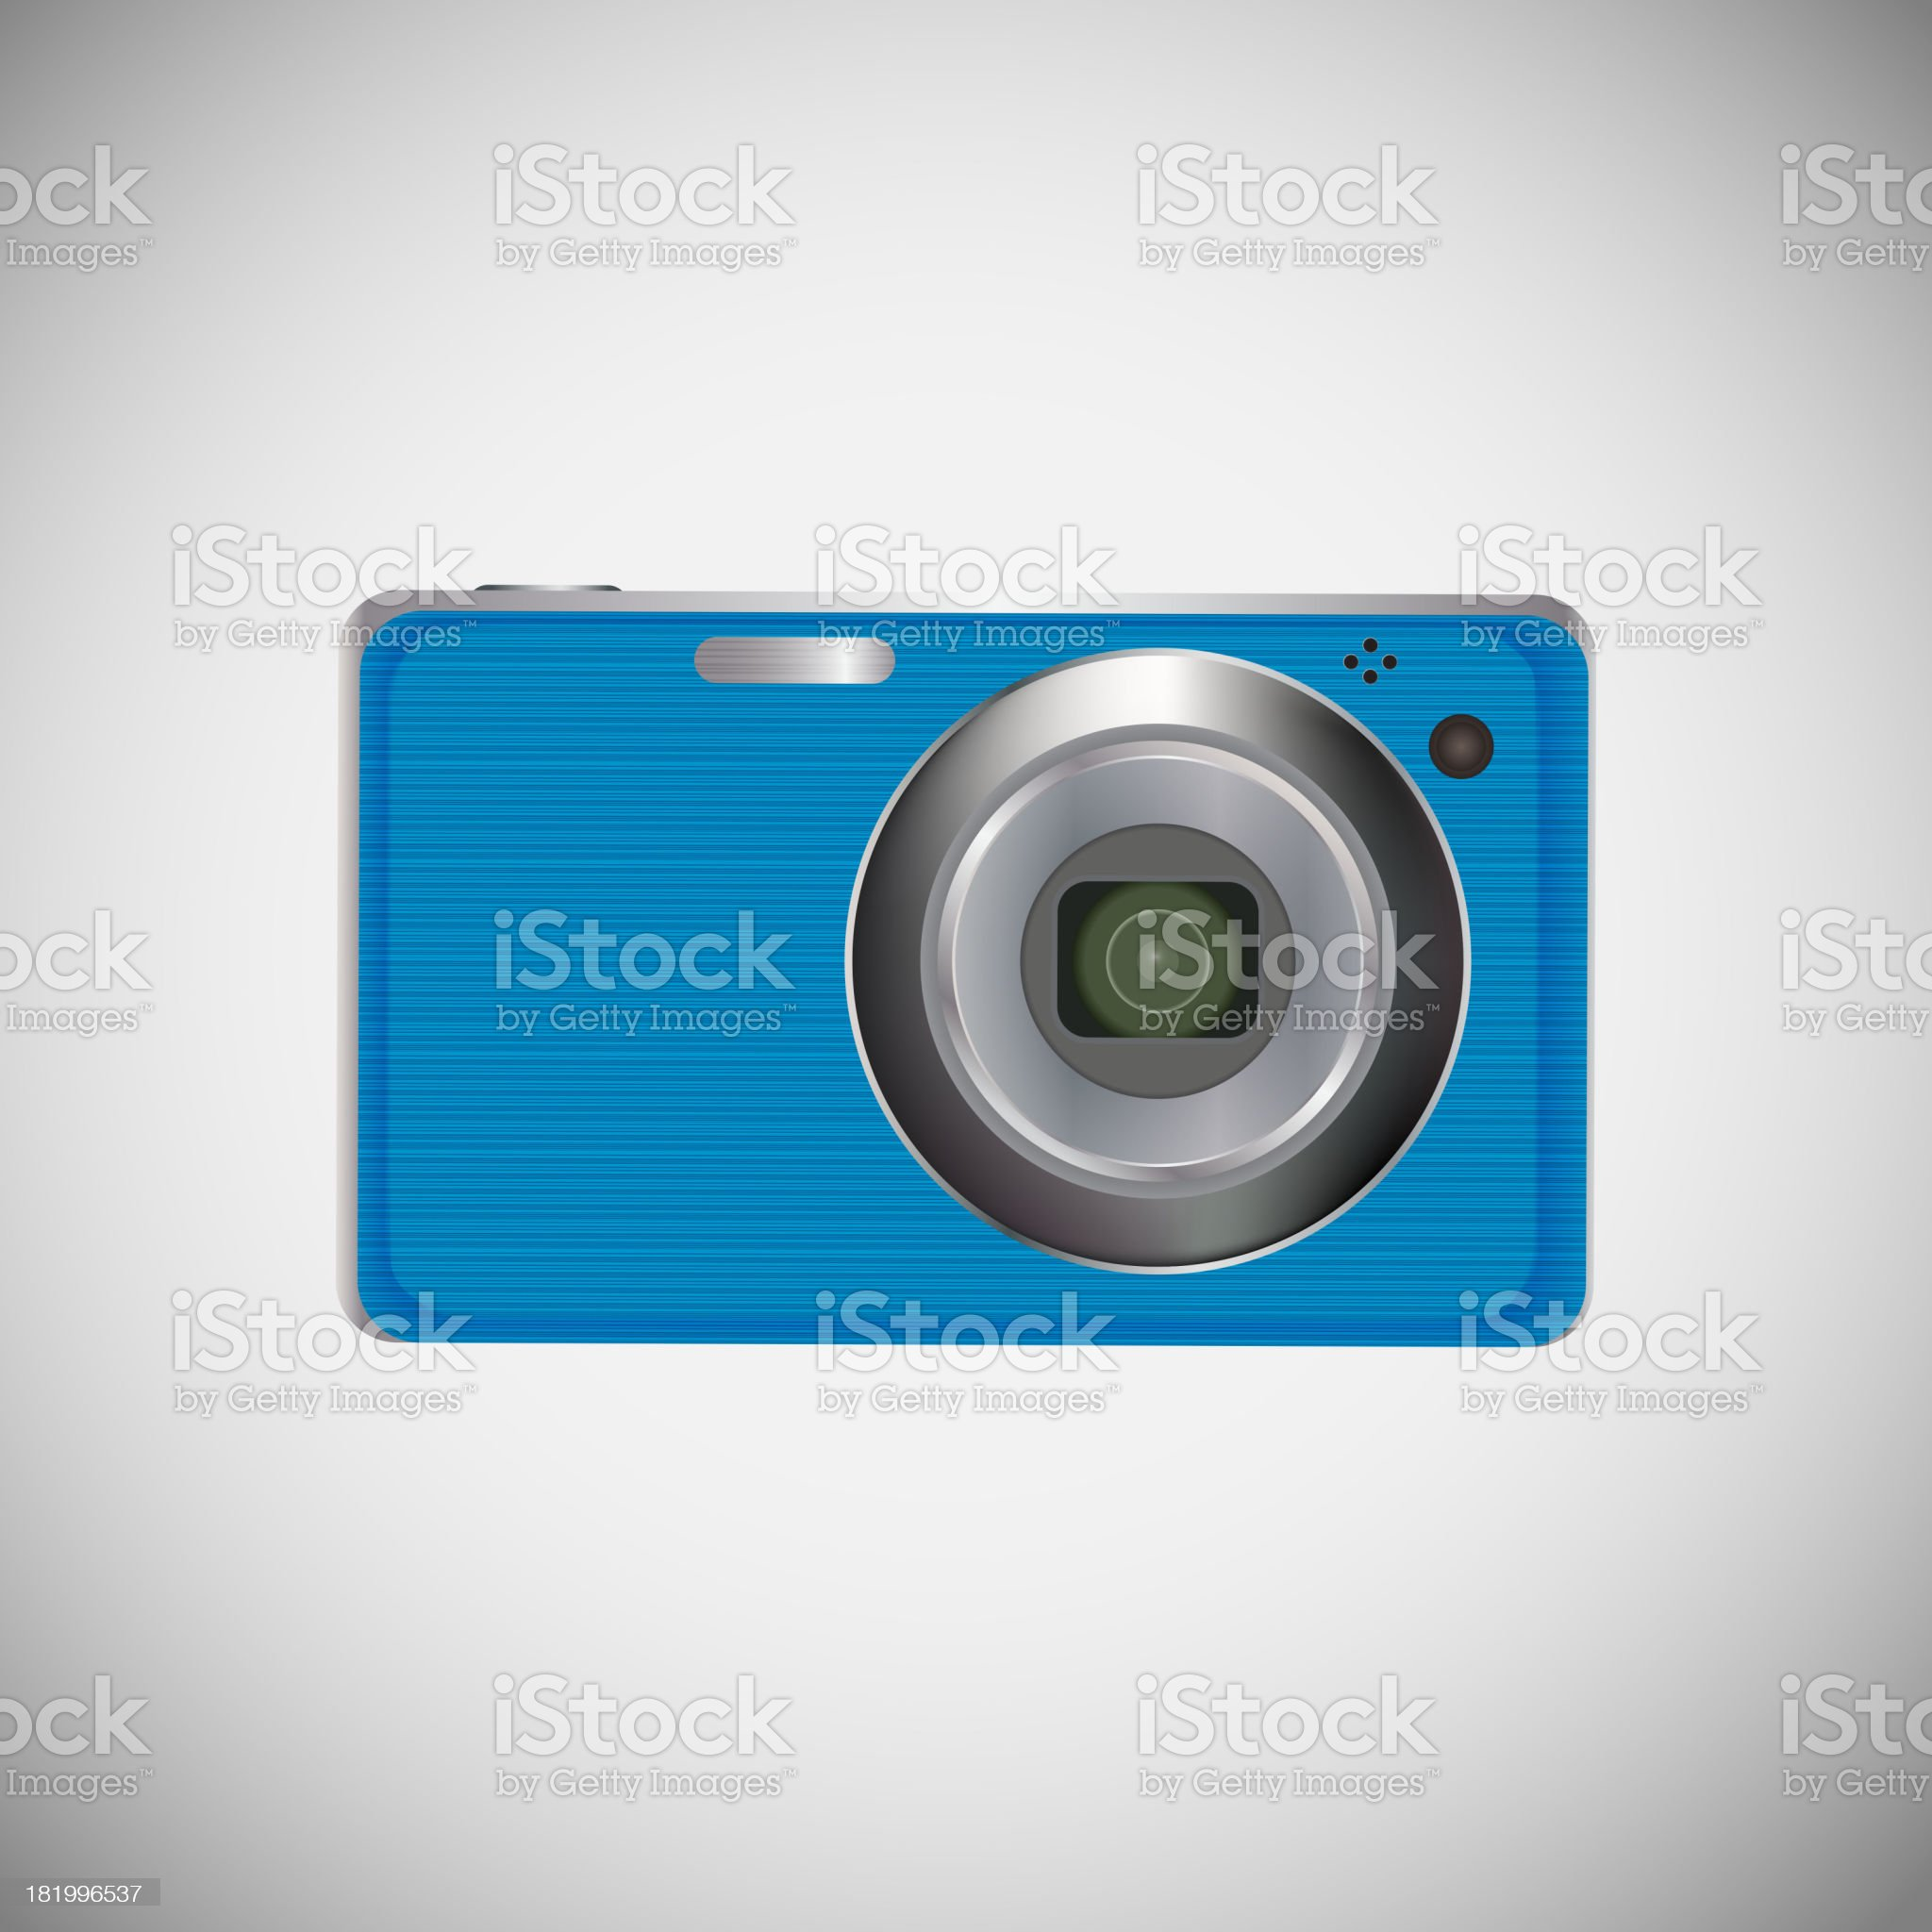 Camera application icons vector illustration royalty-free stock vector art